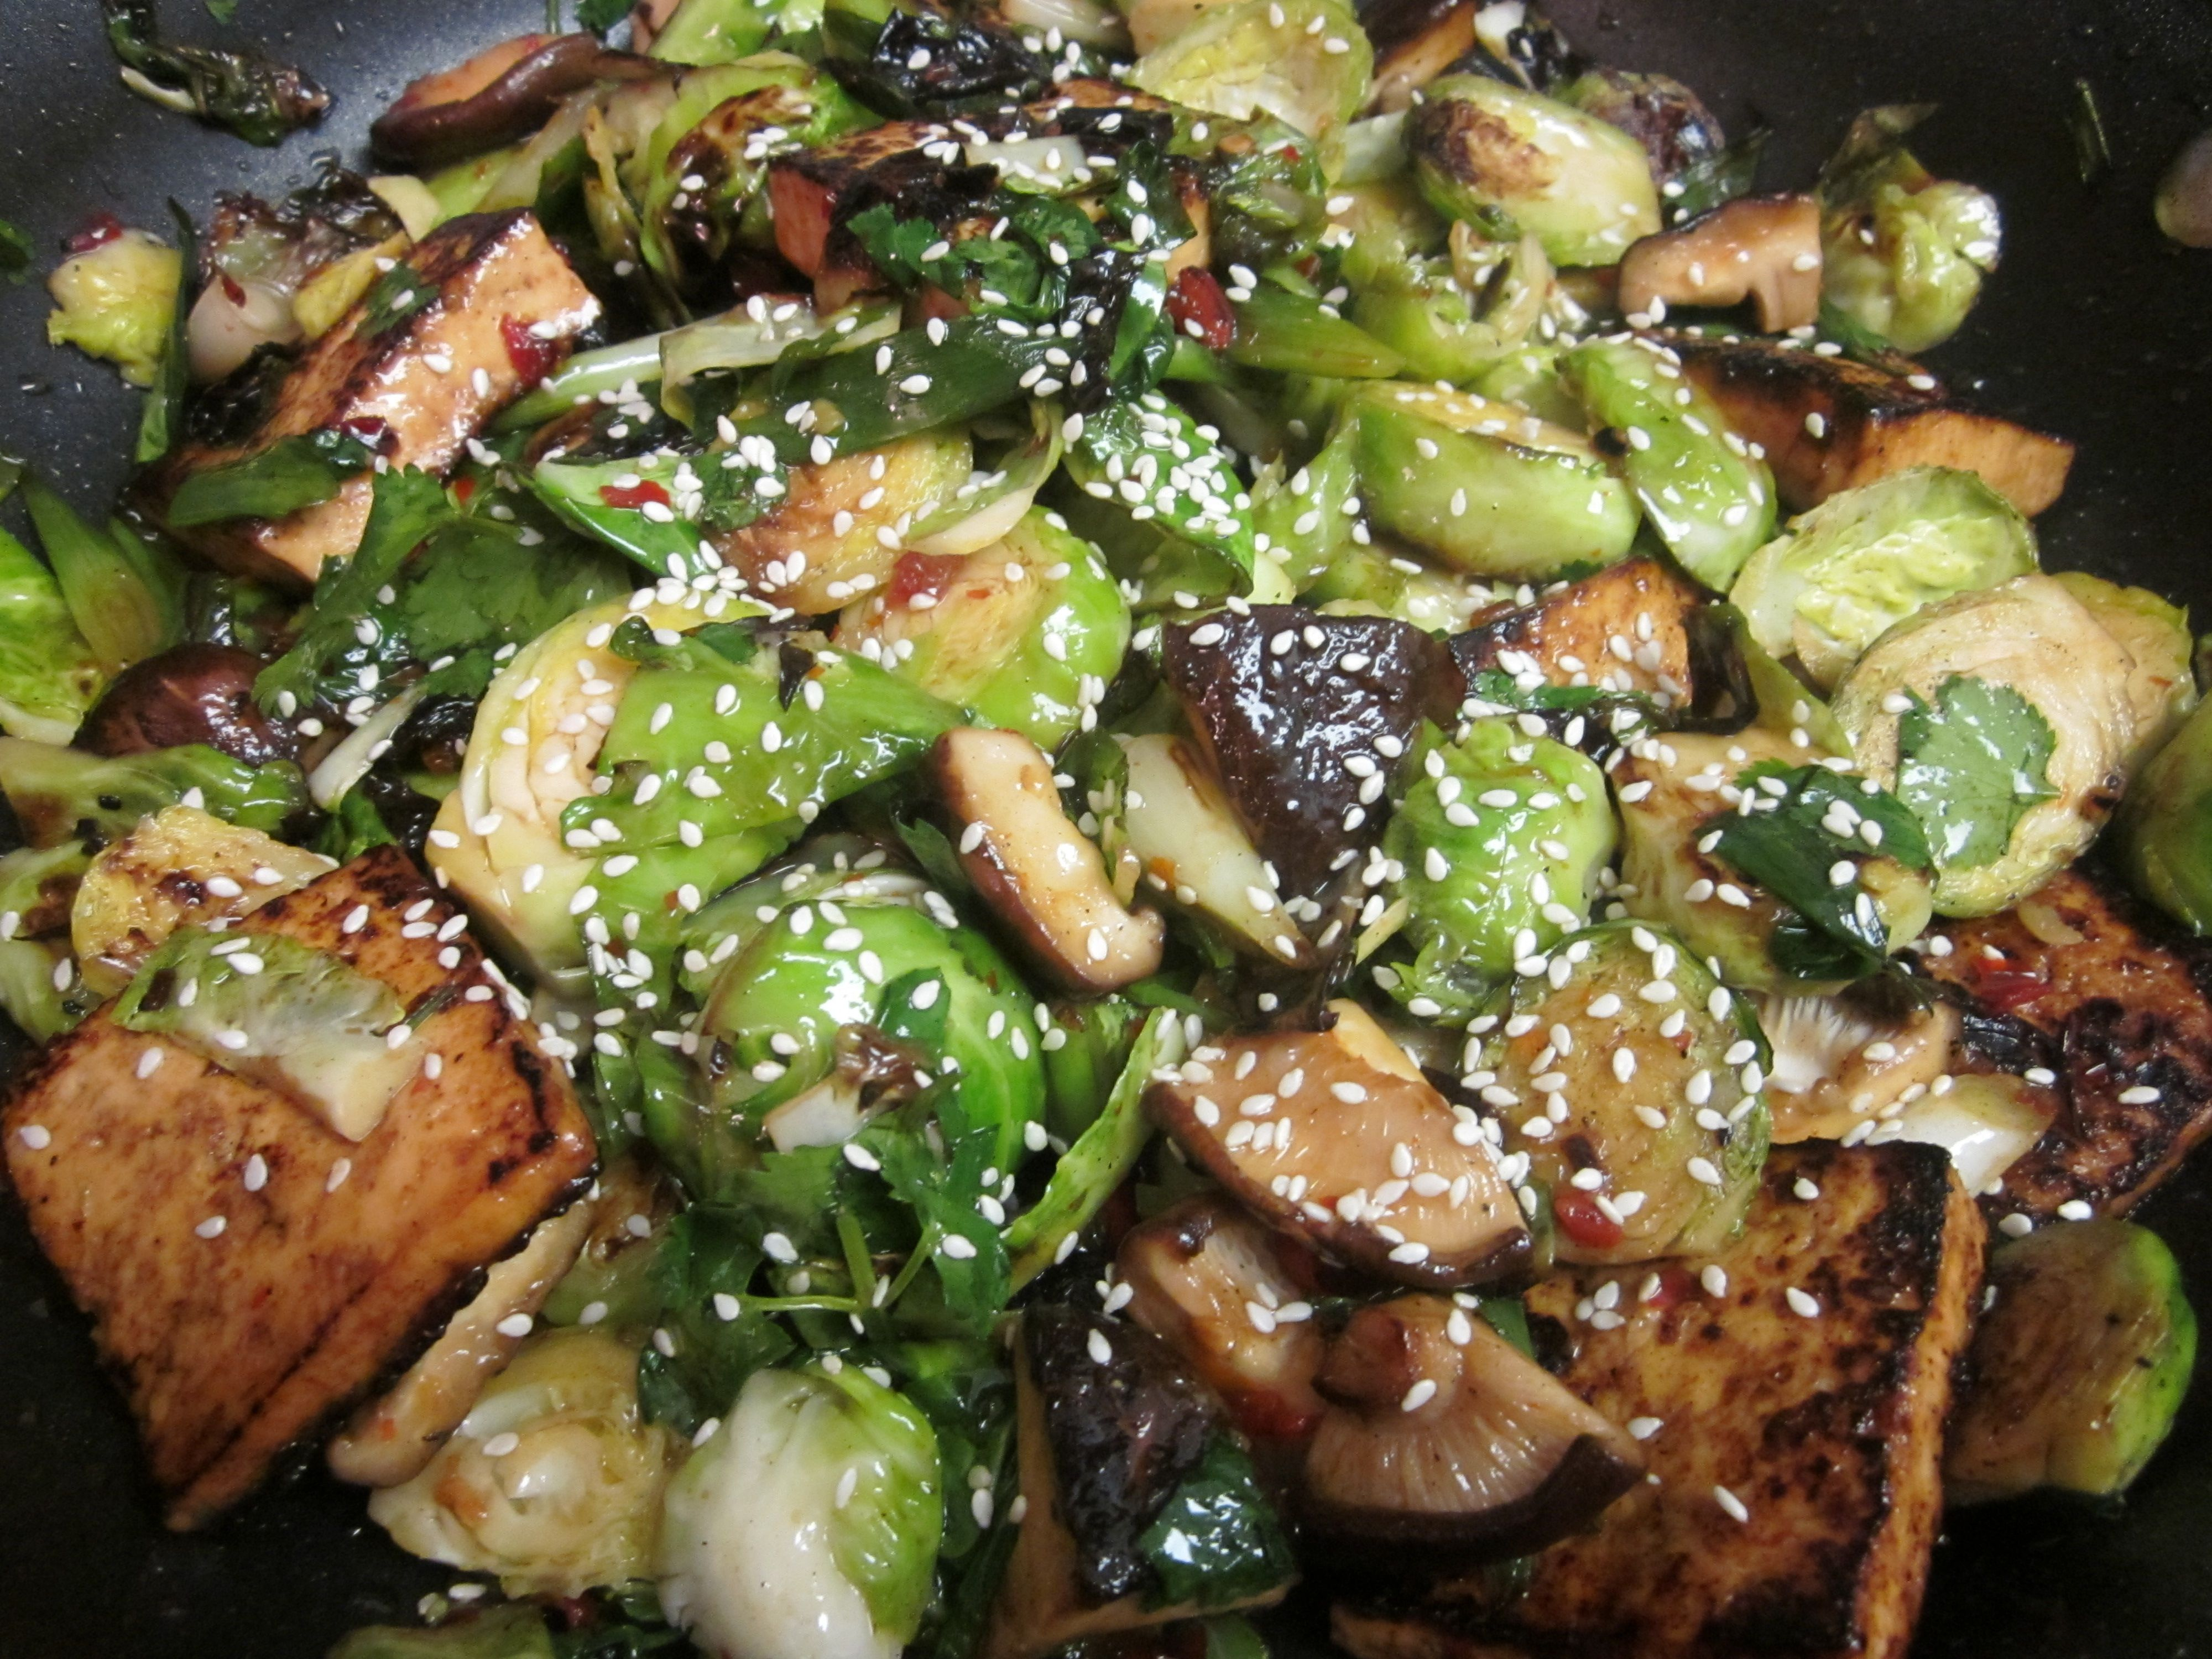 Brussels Sprouts and Tofu | Yum! | Pinterest